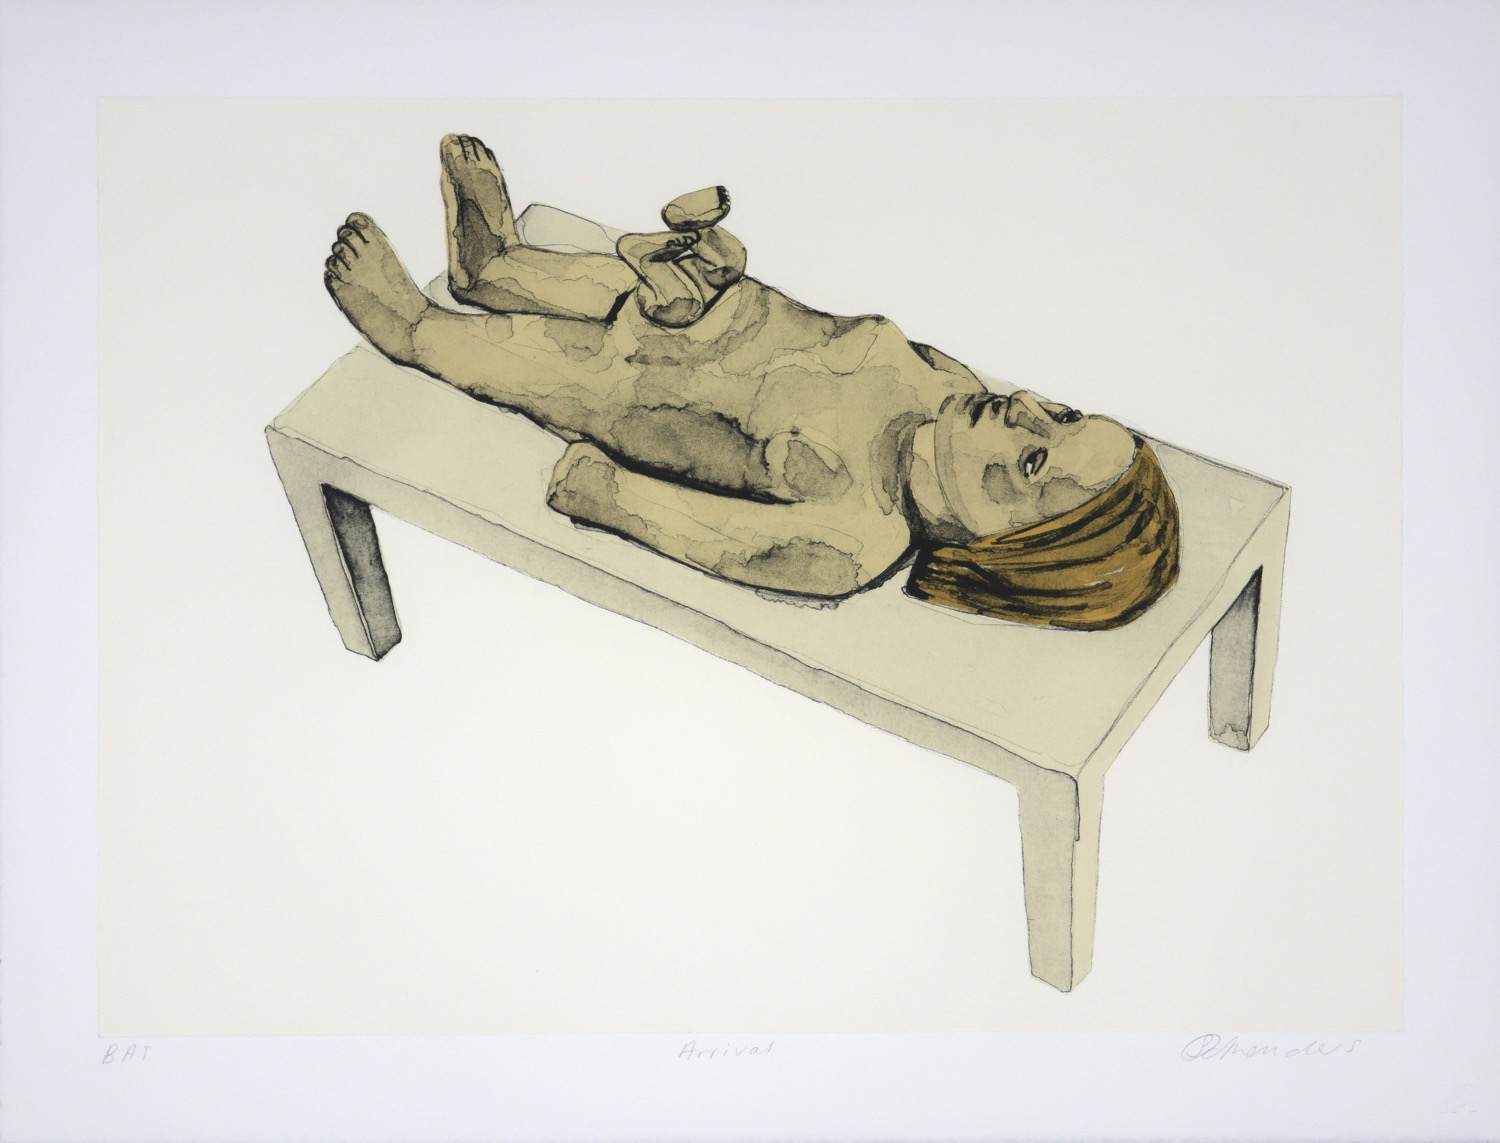 a naked woman lying on a table with a baby emerging feet first from her stomach